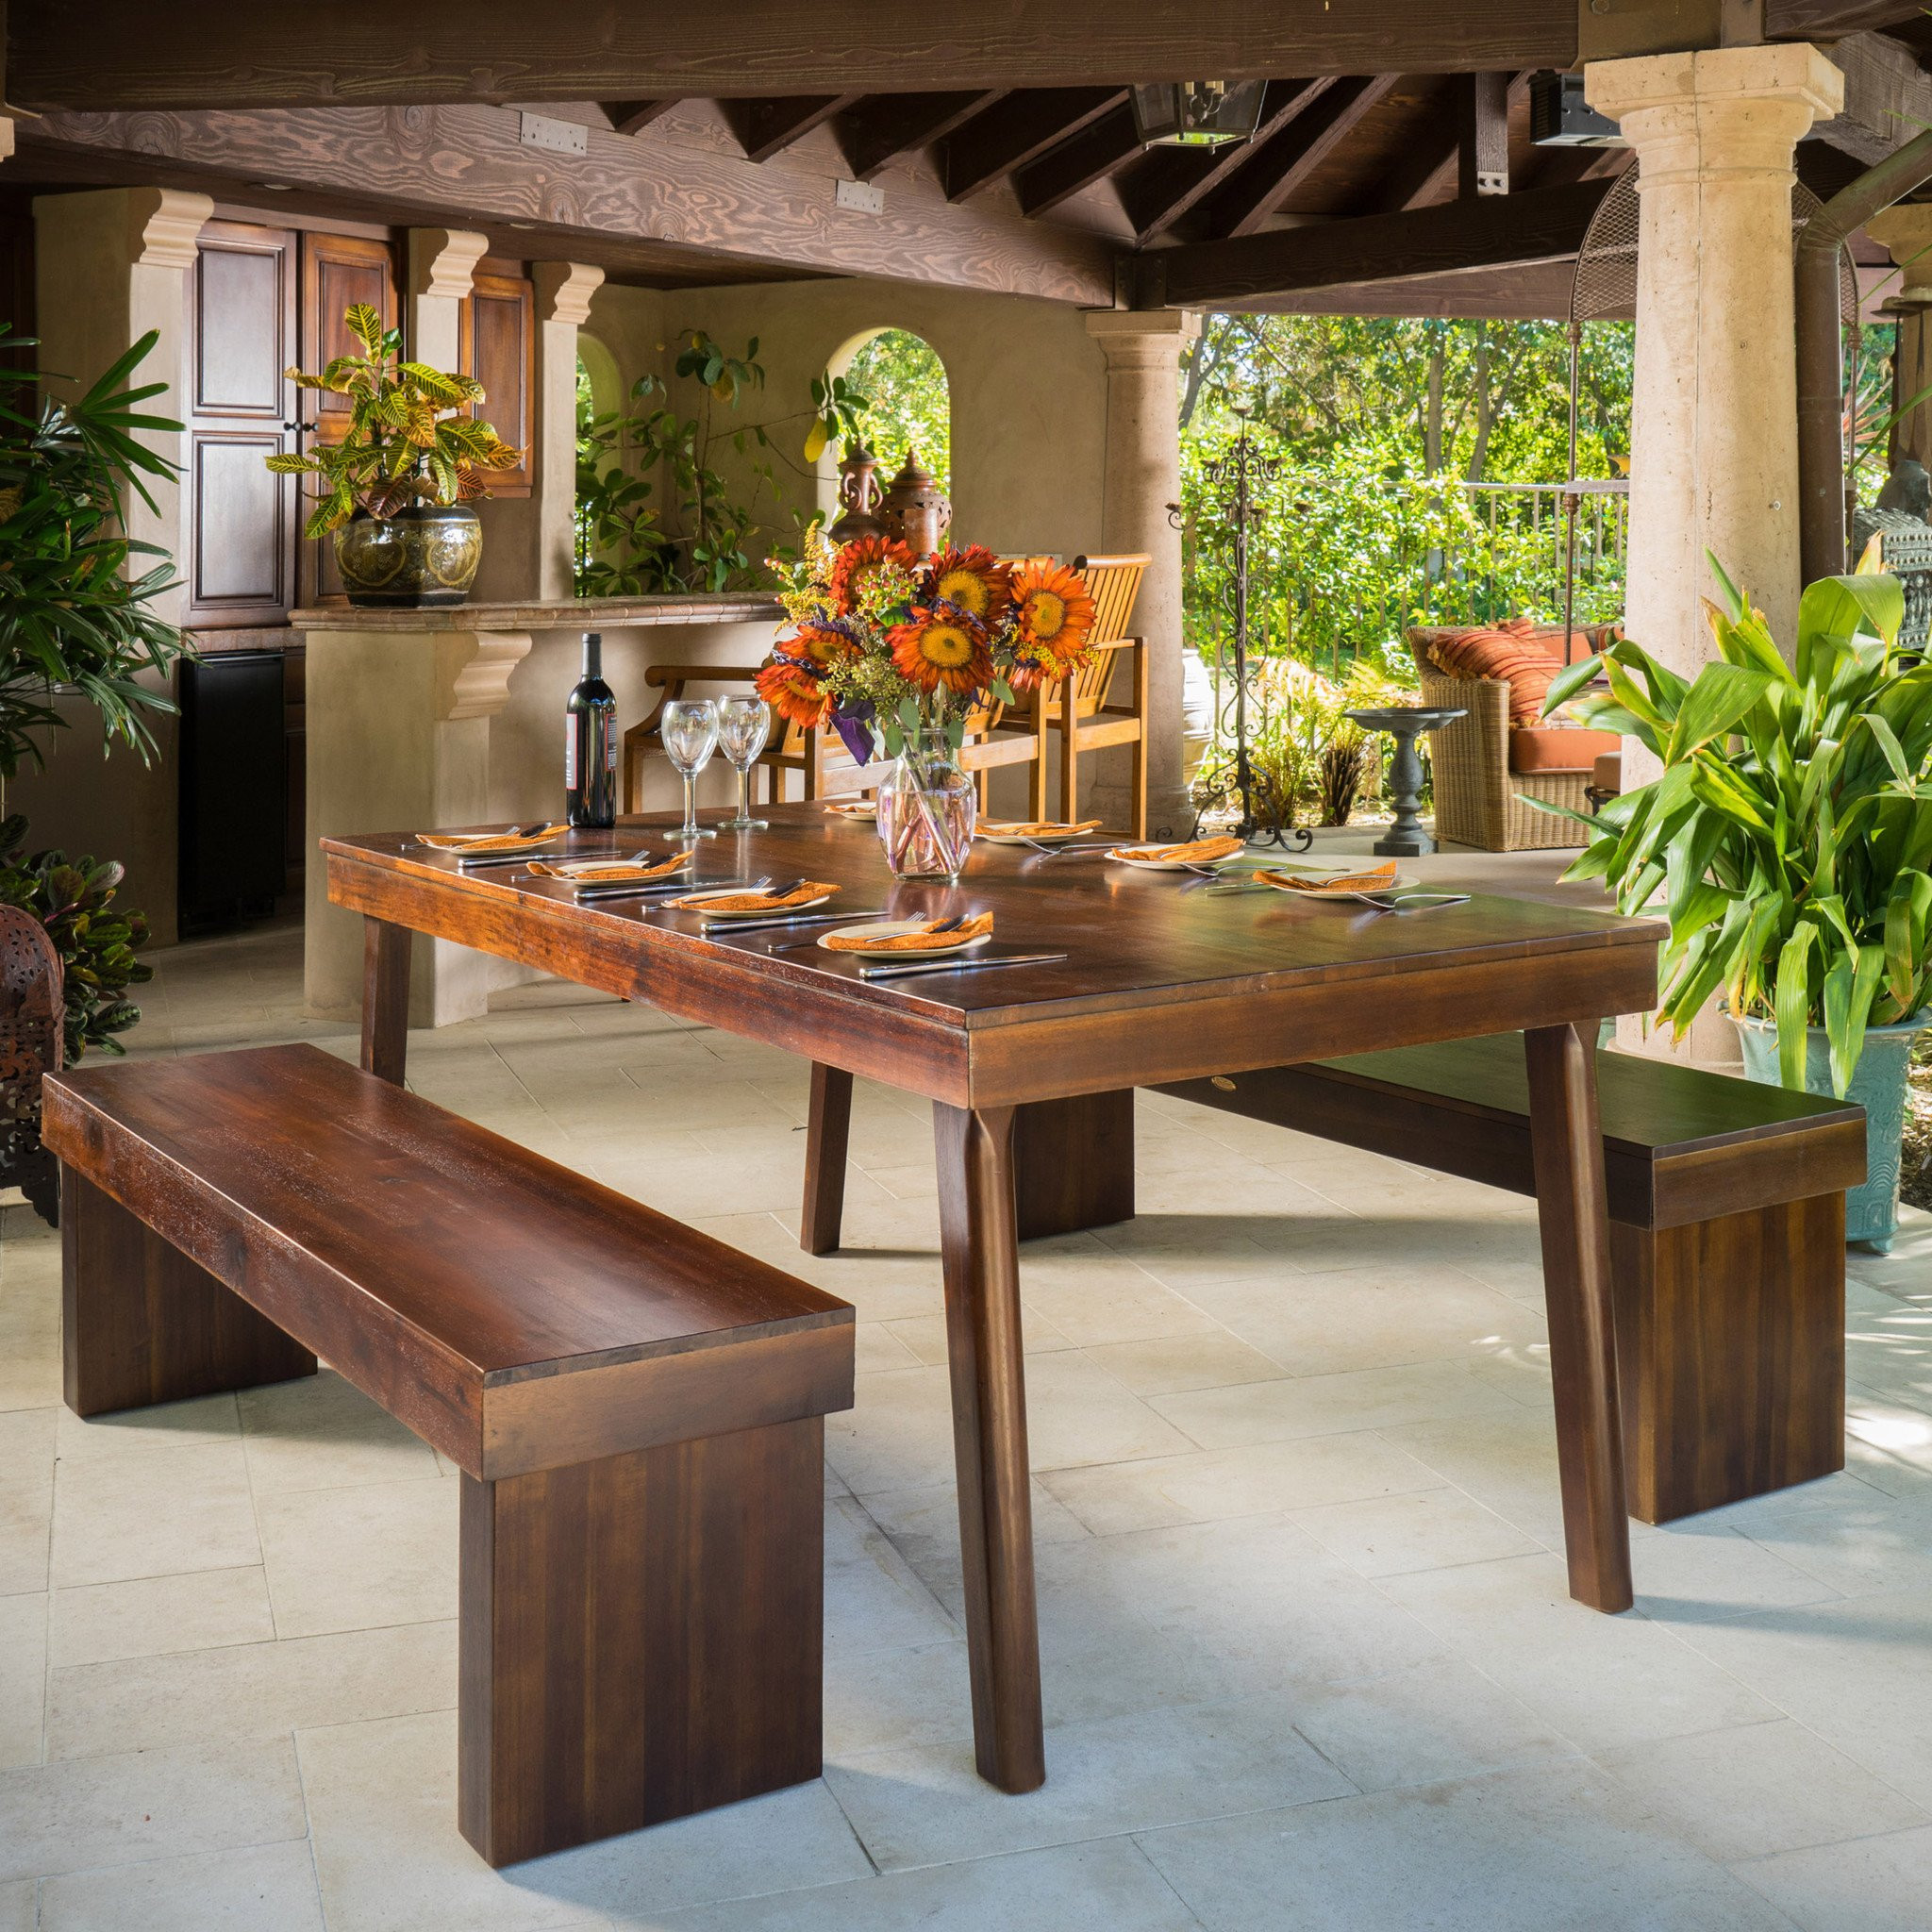 Salvador 3pc Mahogany Stained Wood Table and Bench...